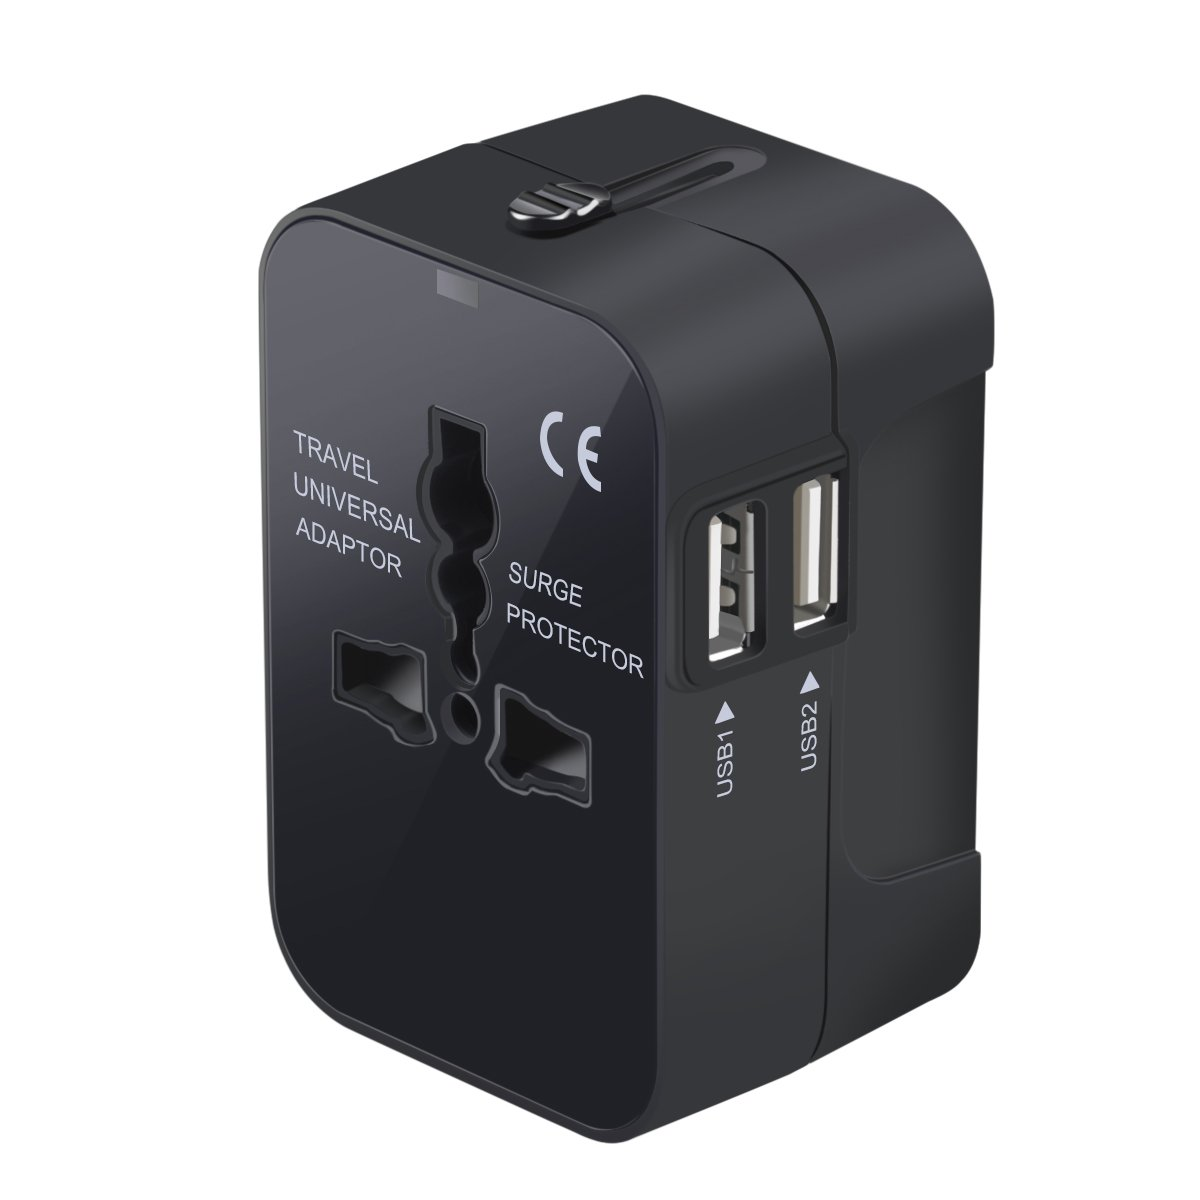 The Universal Travel Adaptor Wall Charger travel product recommended by Sara Skirboll on Lifney.